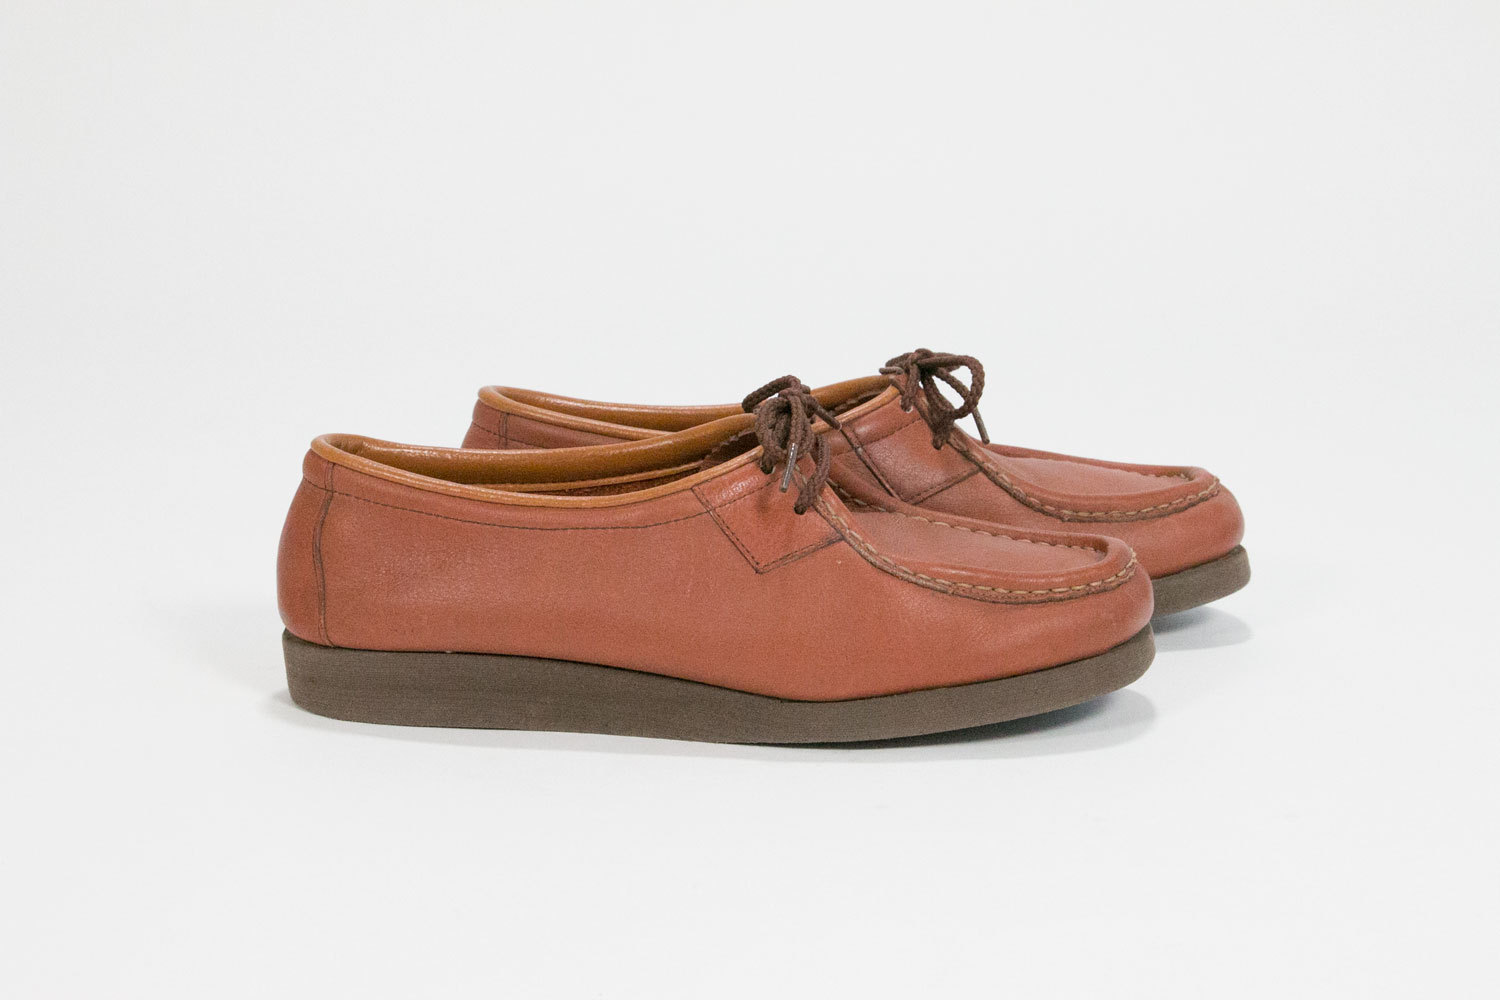 460a9202334 vintage-1960s-1970s-womens-leather-loafers-womens-size-7-7-5-jcpenney-shoe -classics-2.jpg